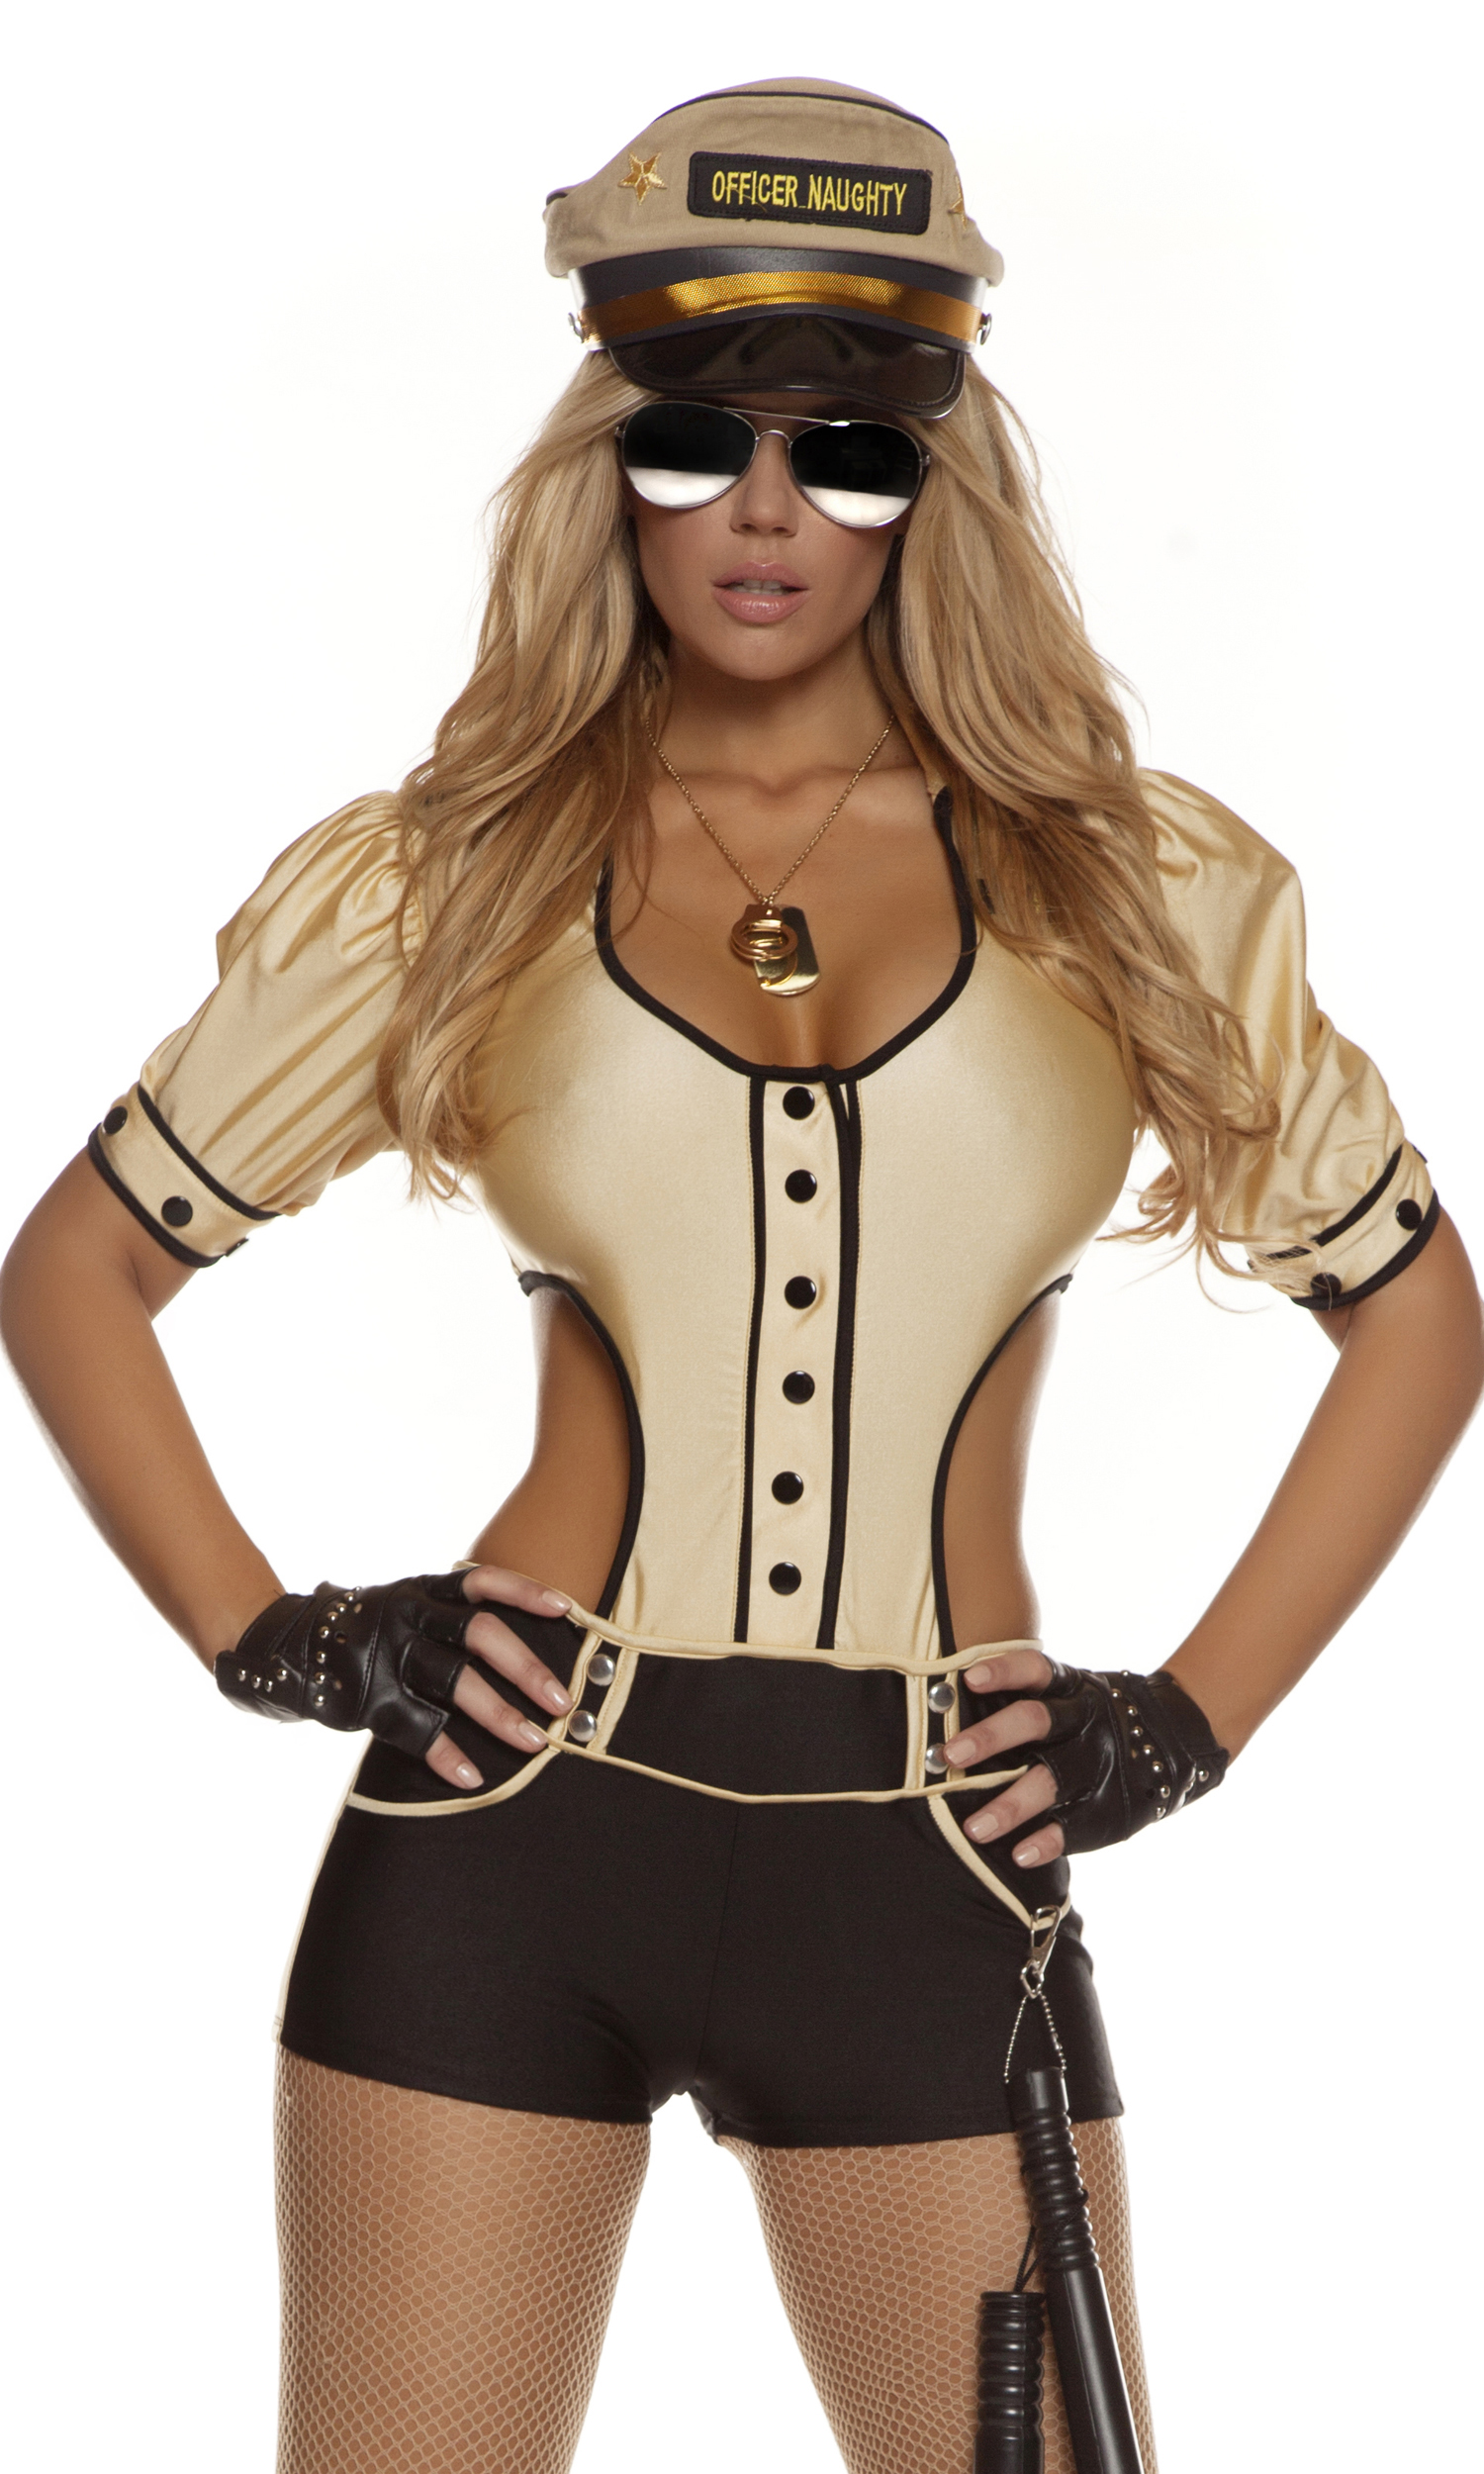 sc 1 st  ForPlay Catalog & On Patrol Sexy Police Officer Costume